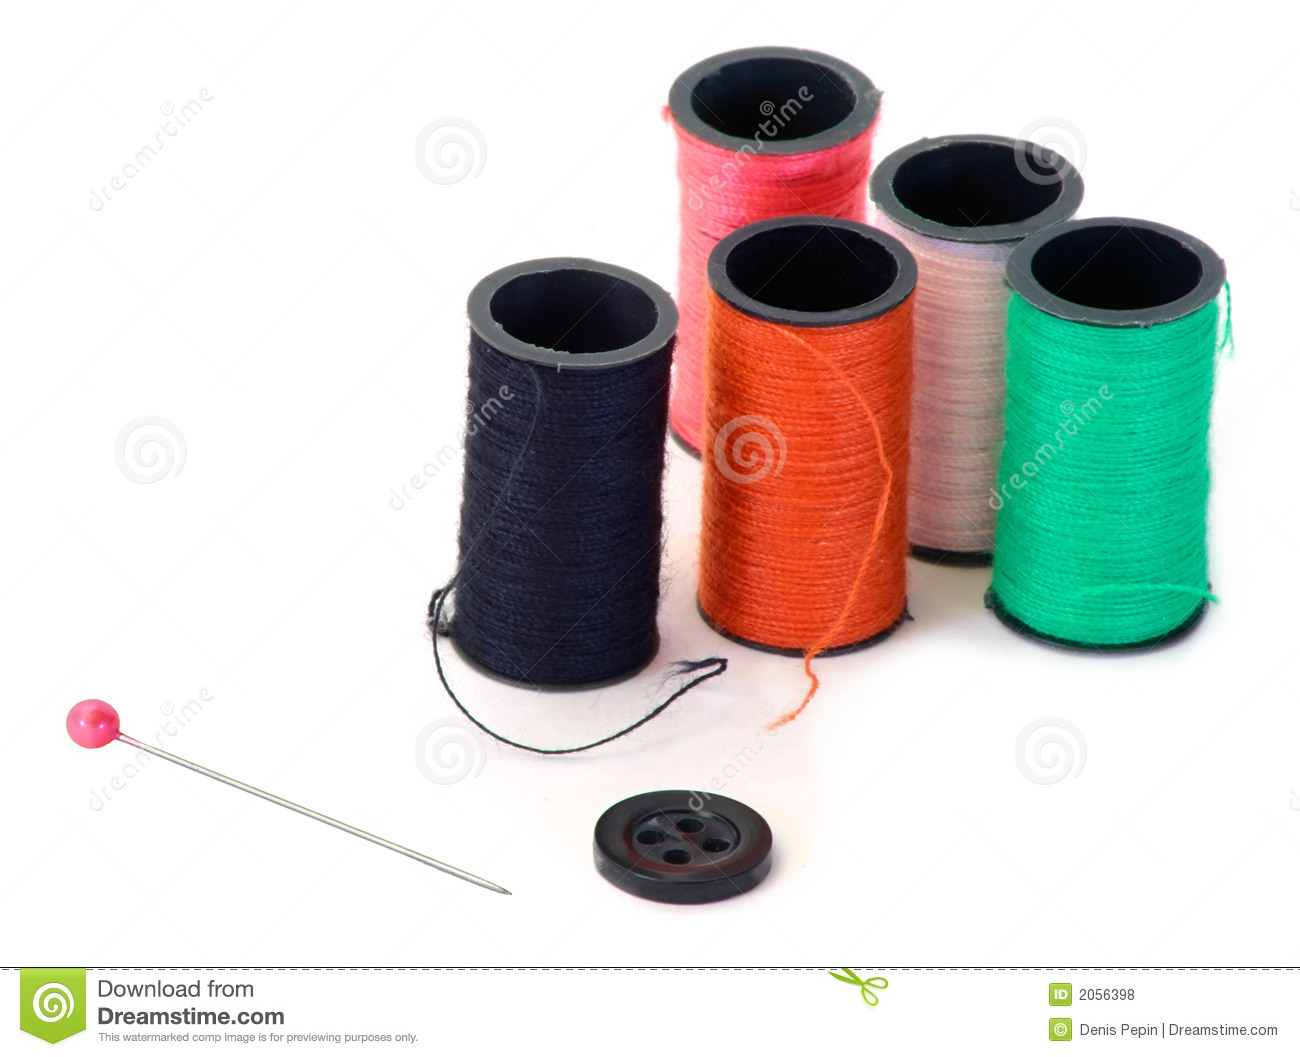 Sewing Thread Sewing thread